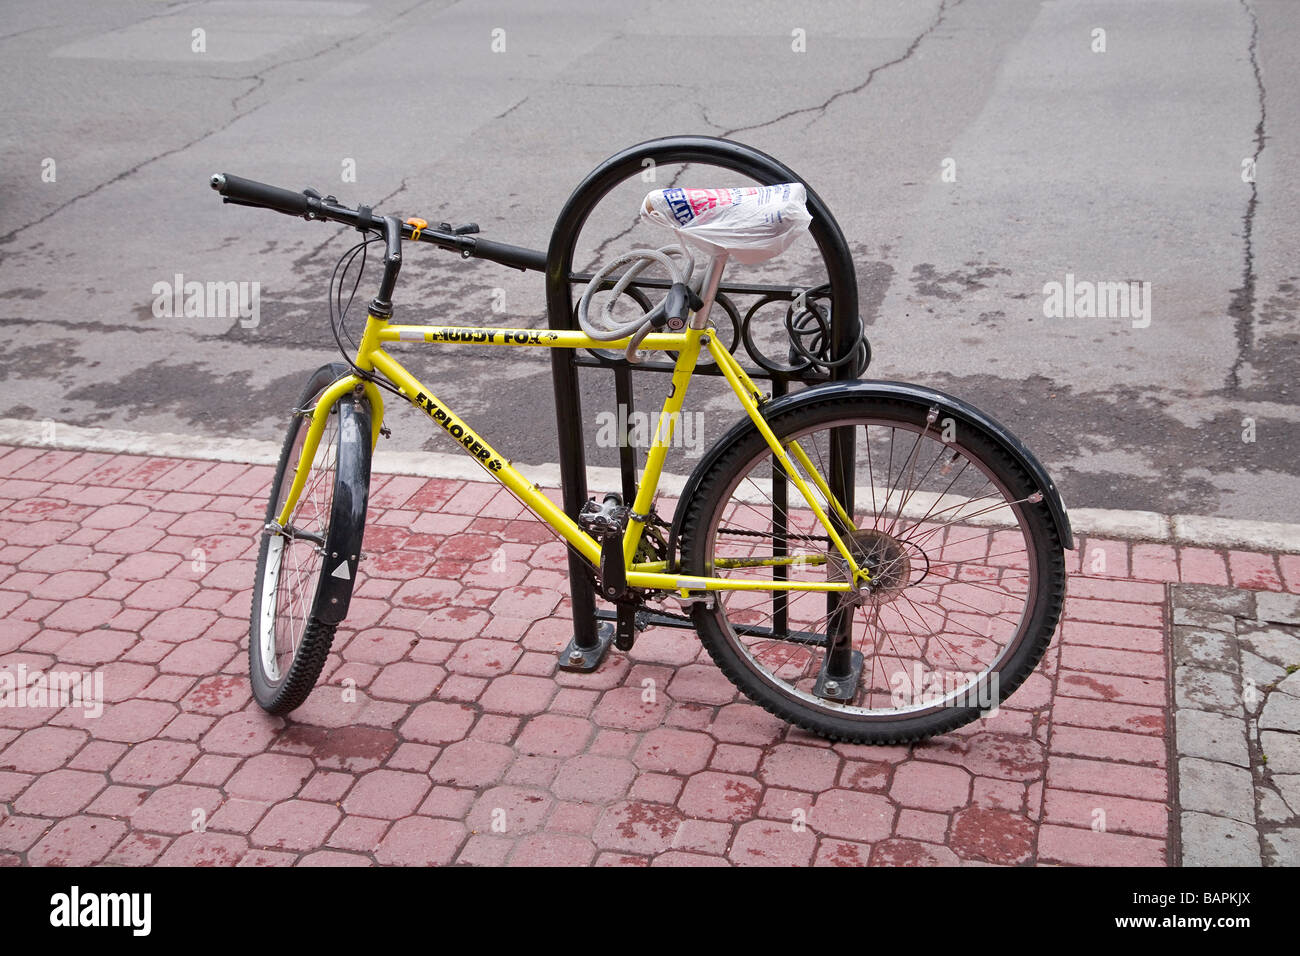 A bicycle locked to a bike rack with a bicycle lock The seat is covered with a plastic bag to protect it from the - Stock Image